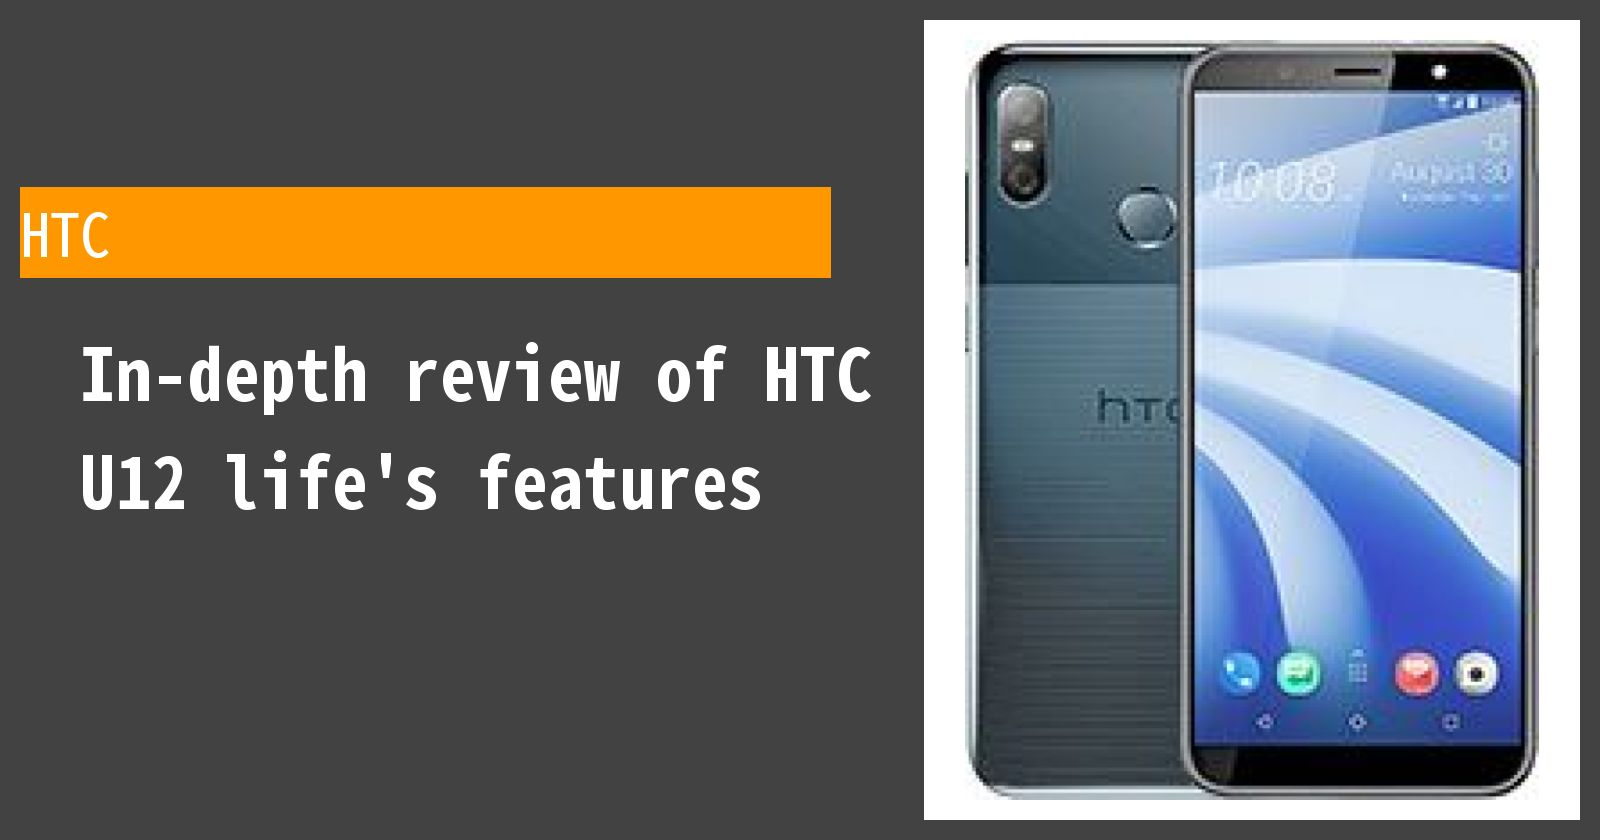 What are the advantages and disadvantages of HTC U12 life? A review